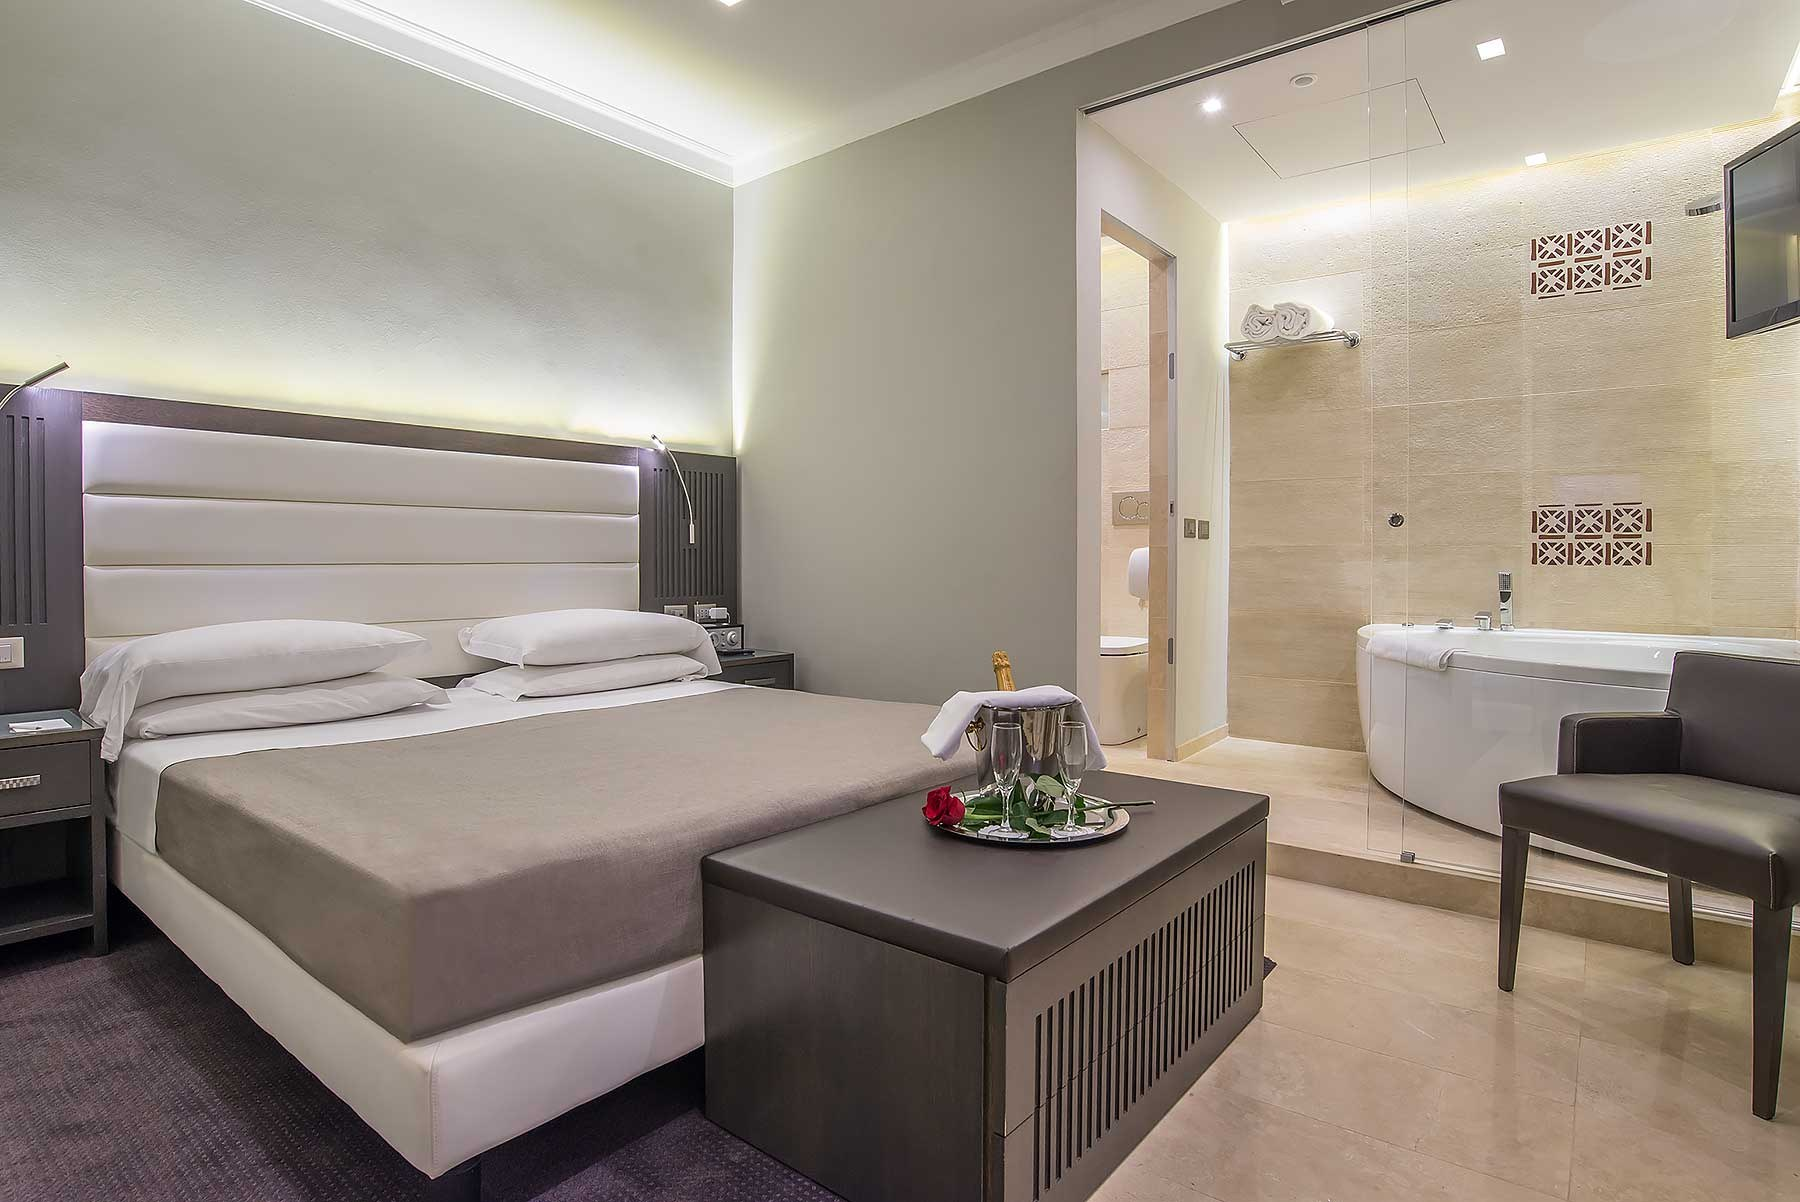 Hotel Accademia 3 Star Hotel Rome citycenter Official Website